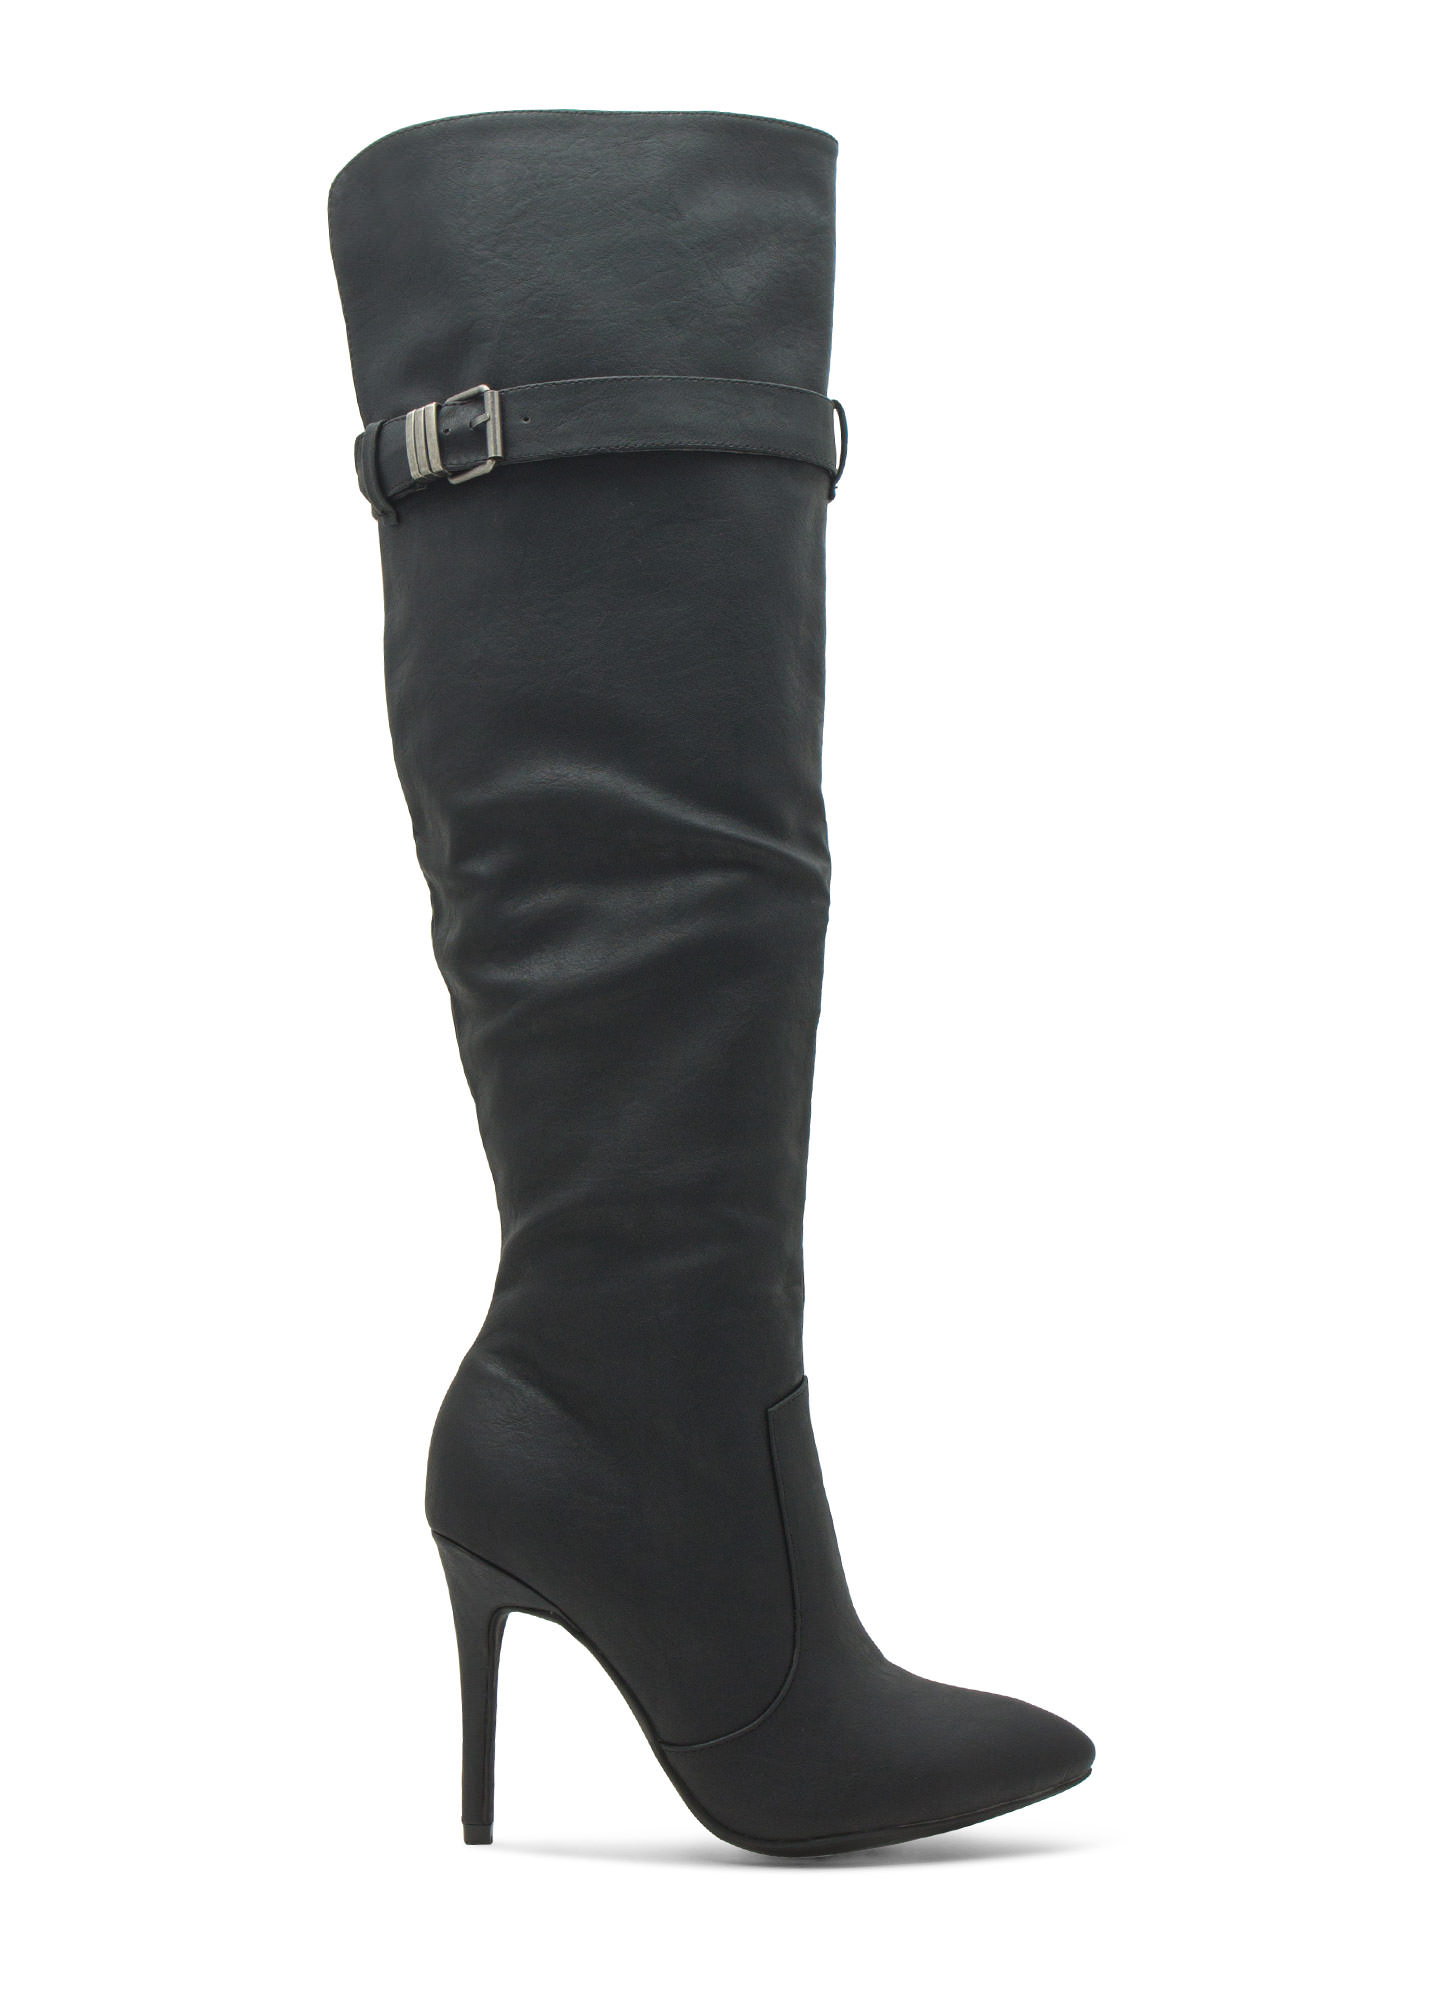 Faux Leather Over-The-Knee Stiletto Boots BLACK